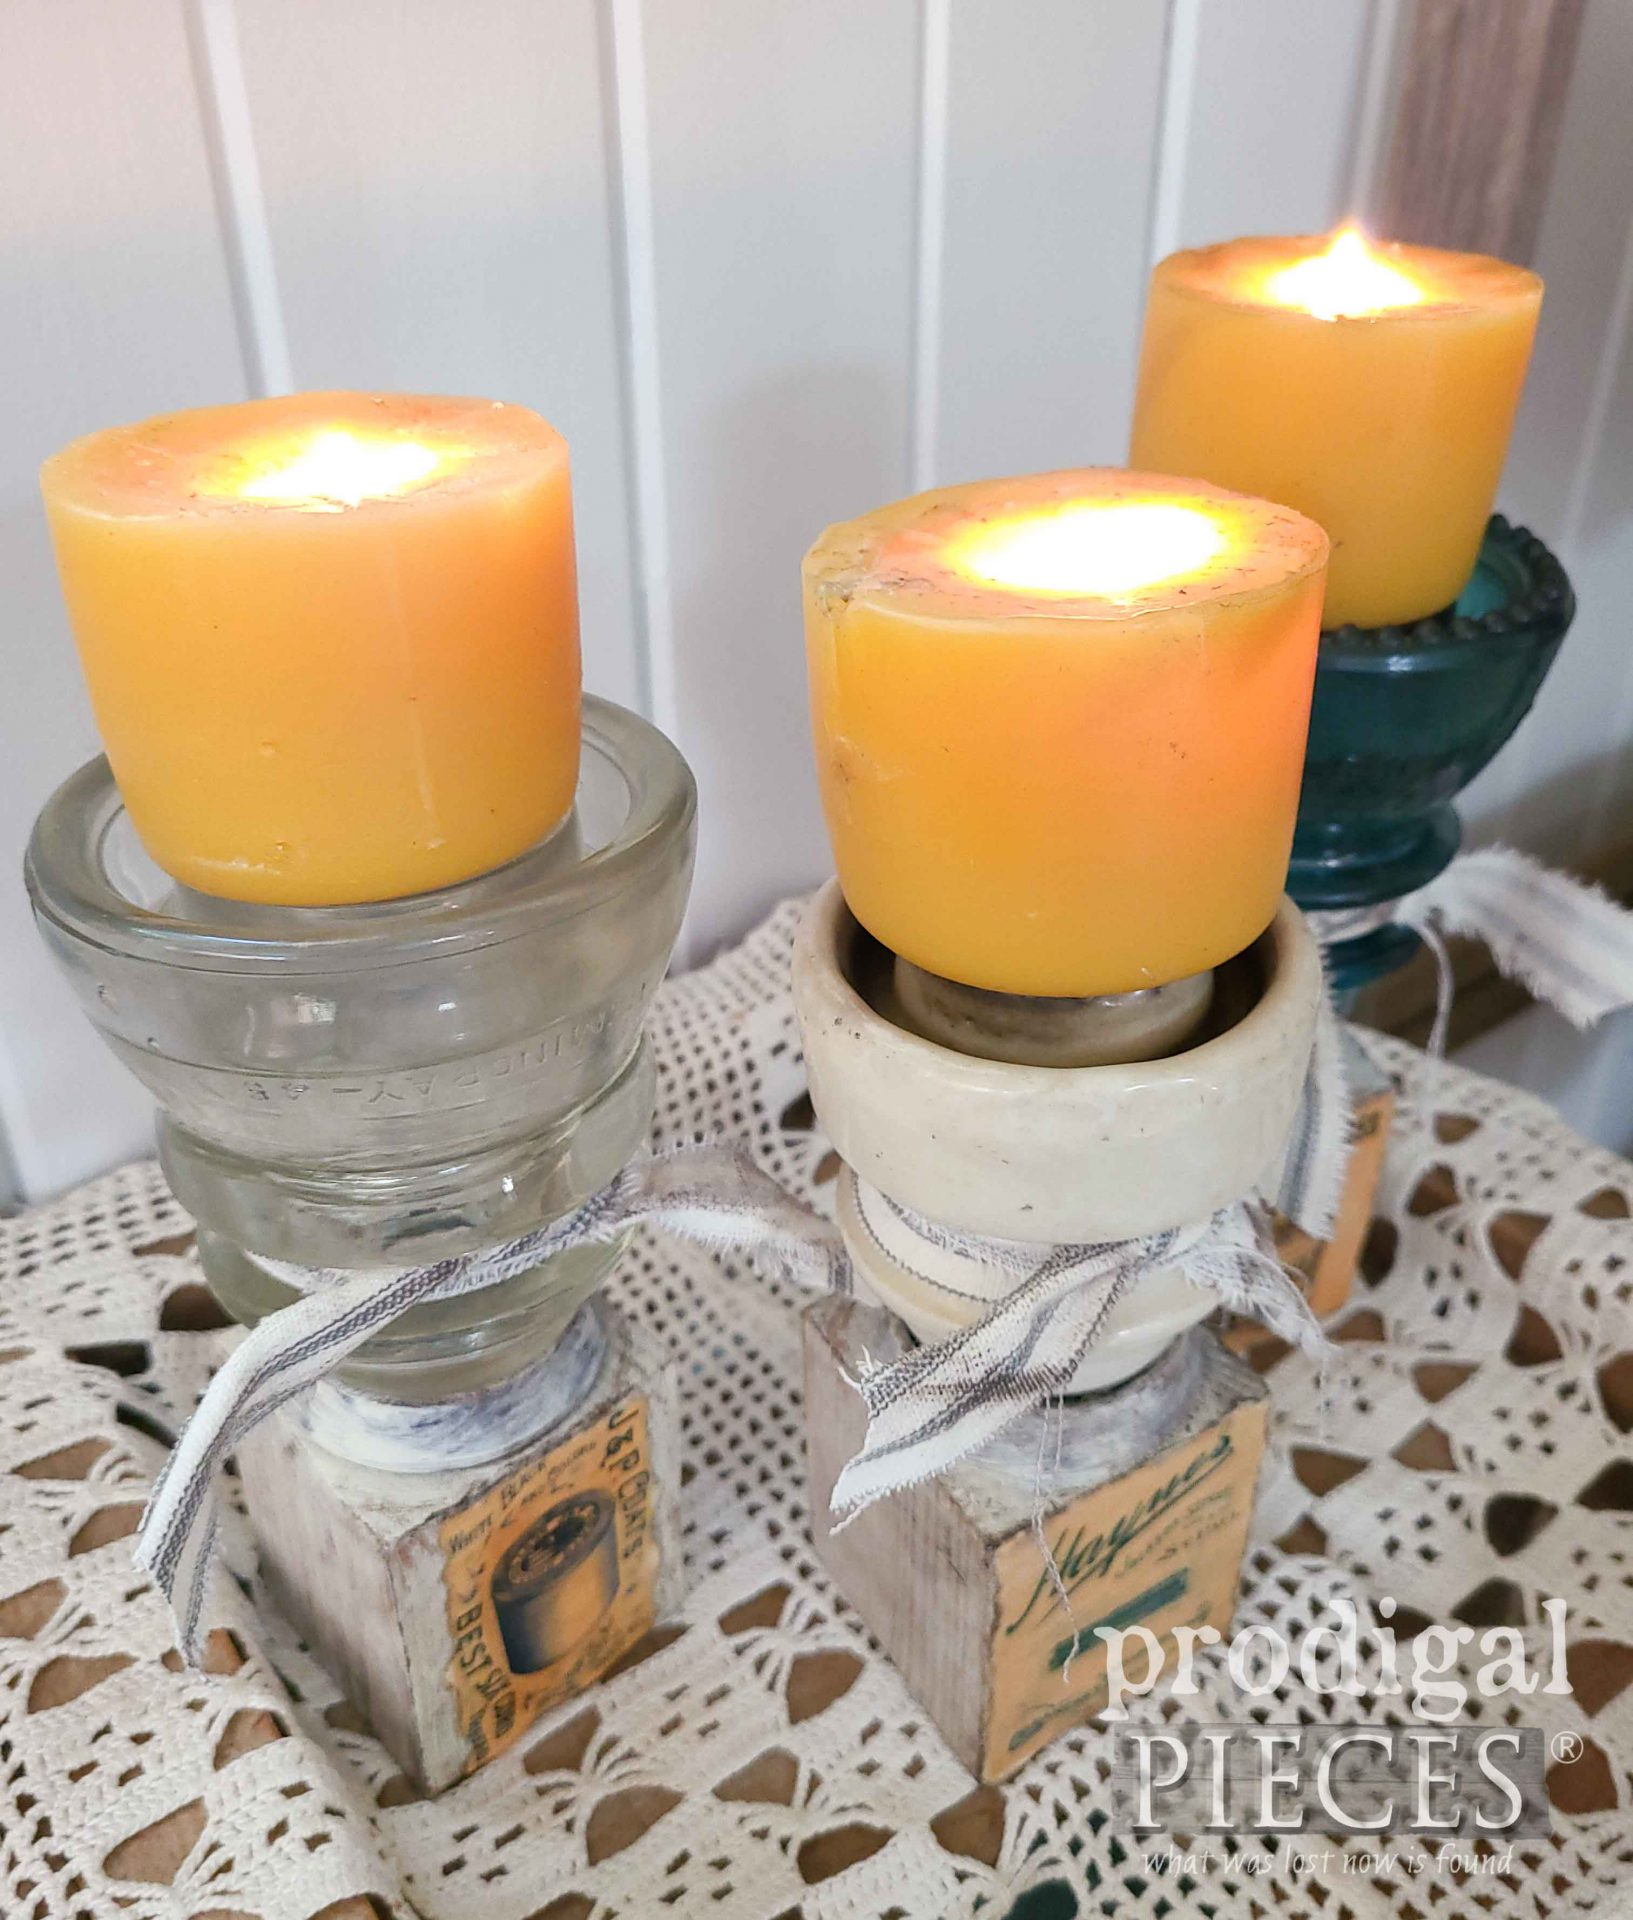 Lit Upcycled Antique Insulator Candle Holders with Handmade Beeswax Candles by Larissa of Prodigal Pieces | prodigalpieces.com #prodigalpieces #handmade #candles #farmhouse #home